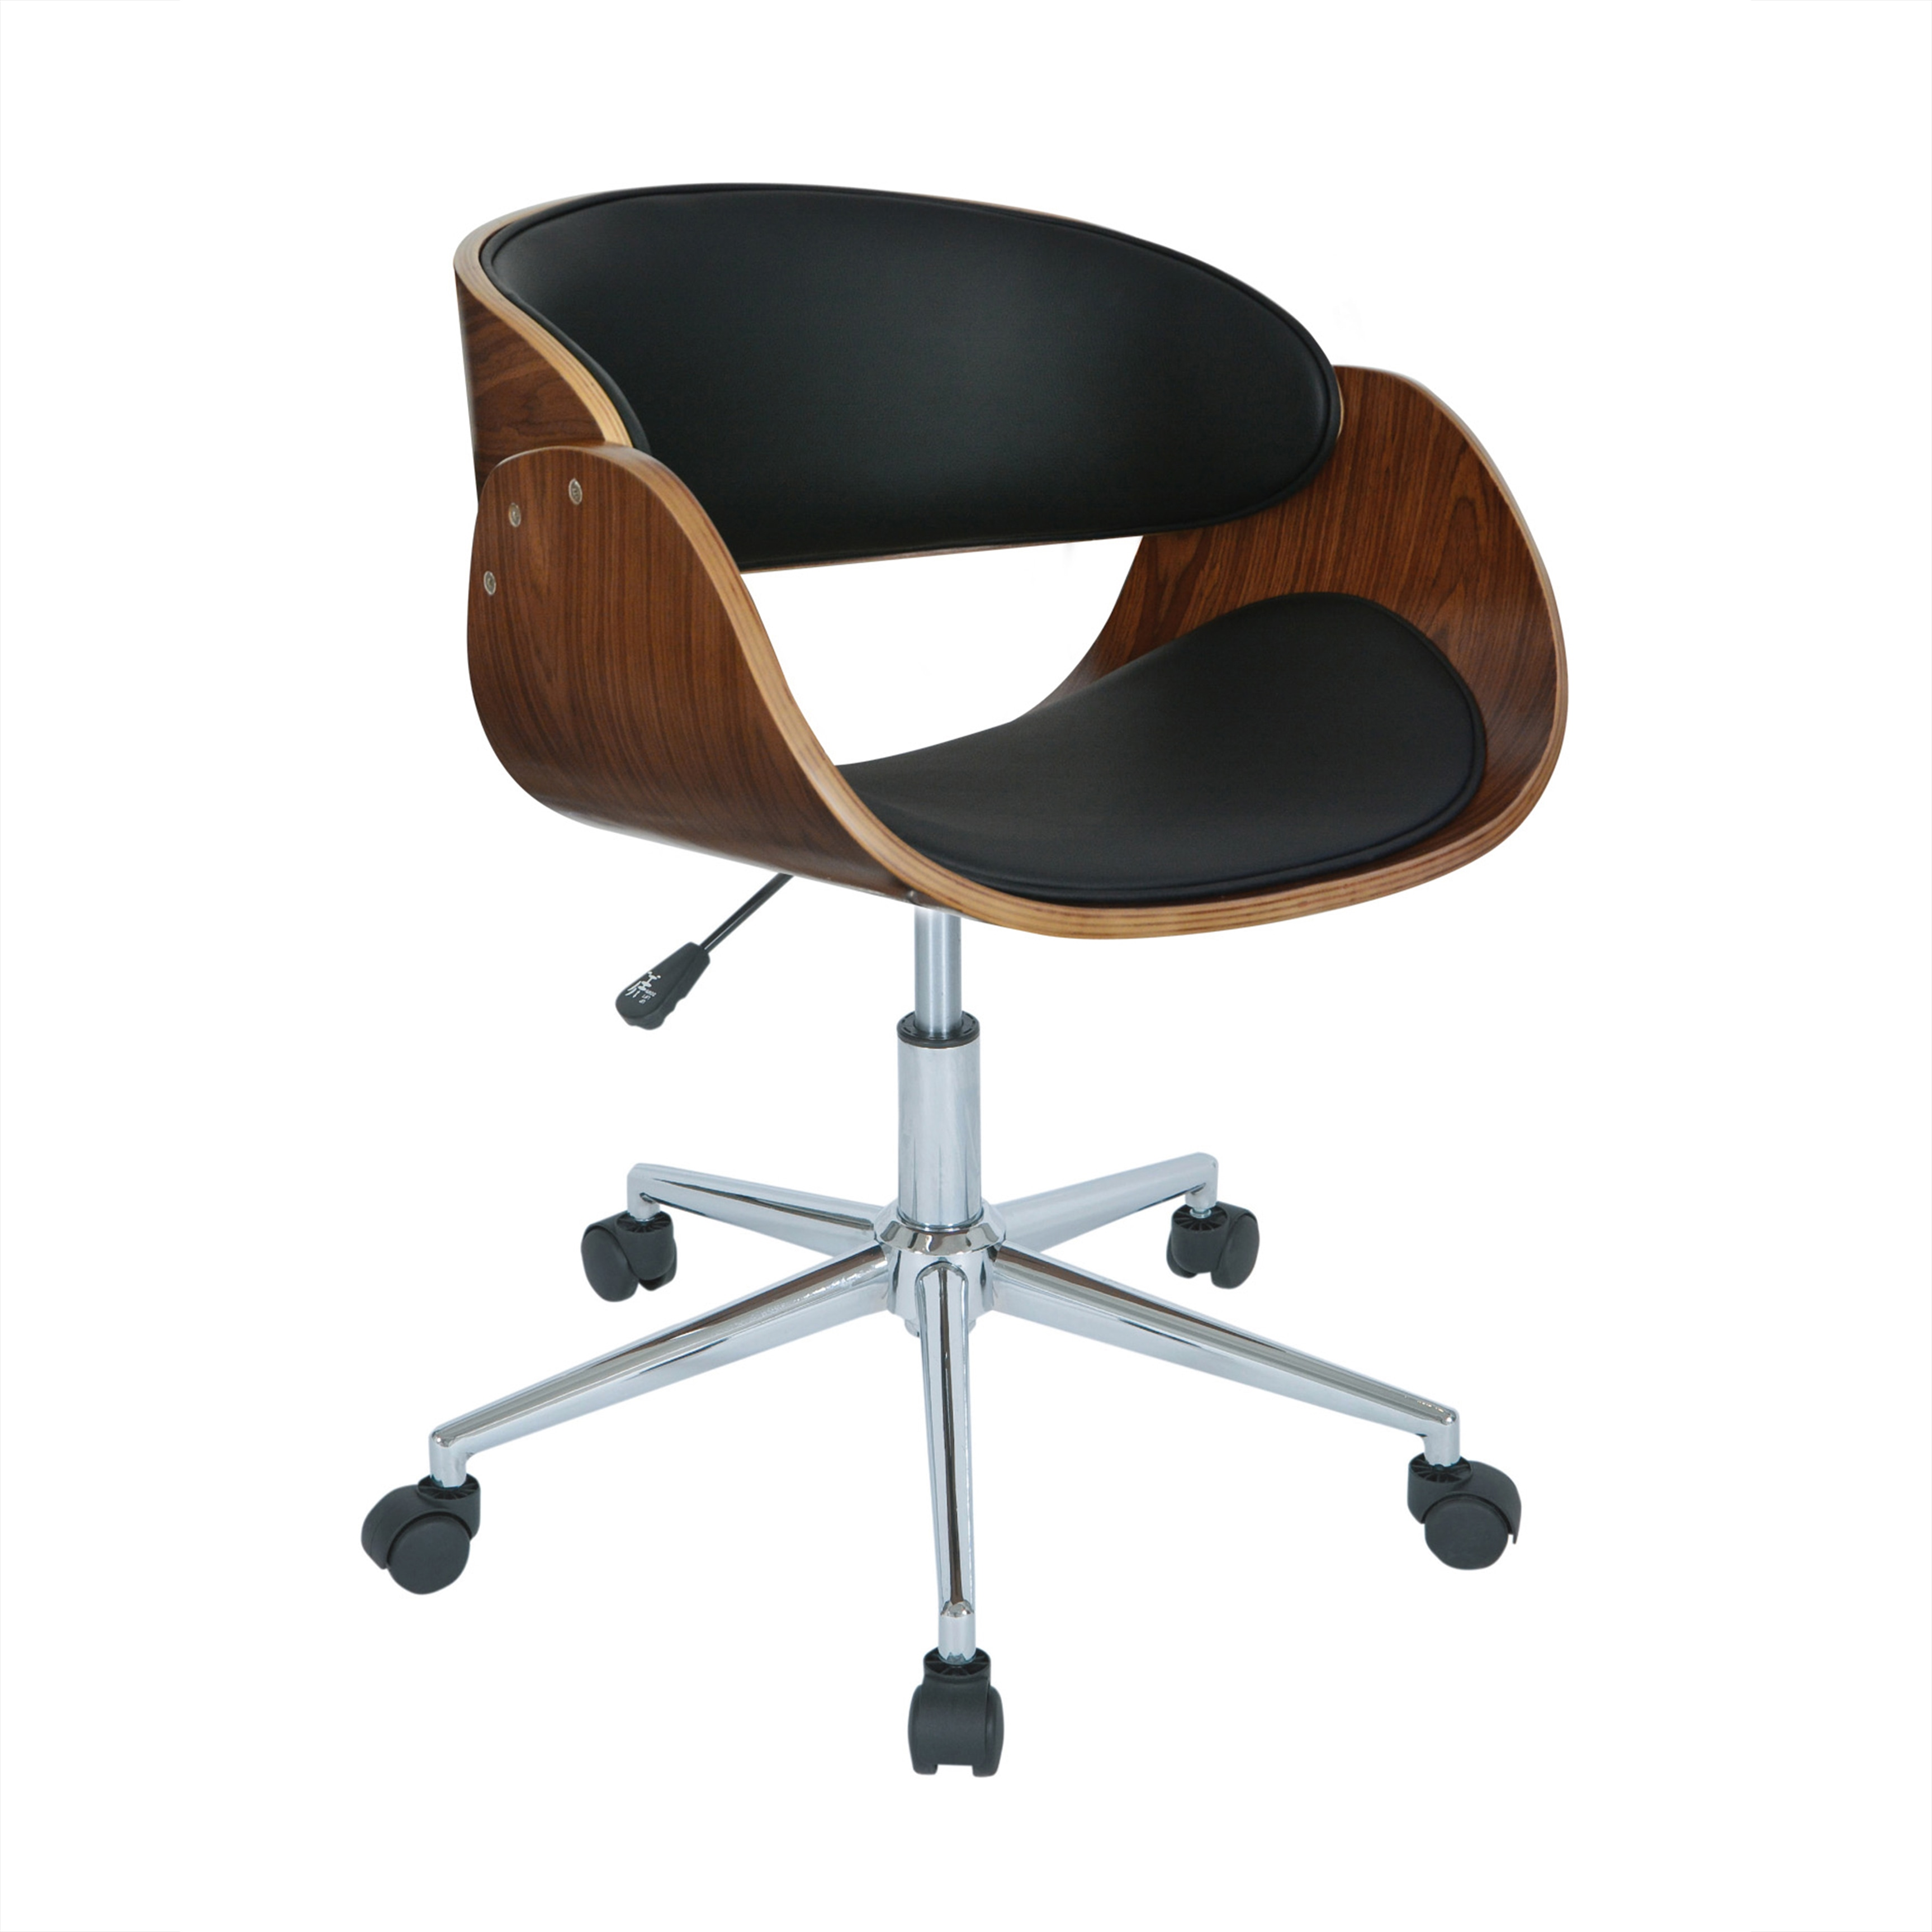 Monroe Adjustable Office Chair Overstock Shopping Great Deals On